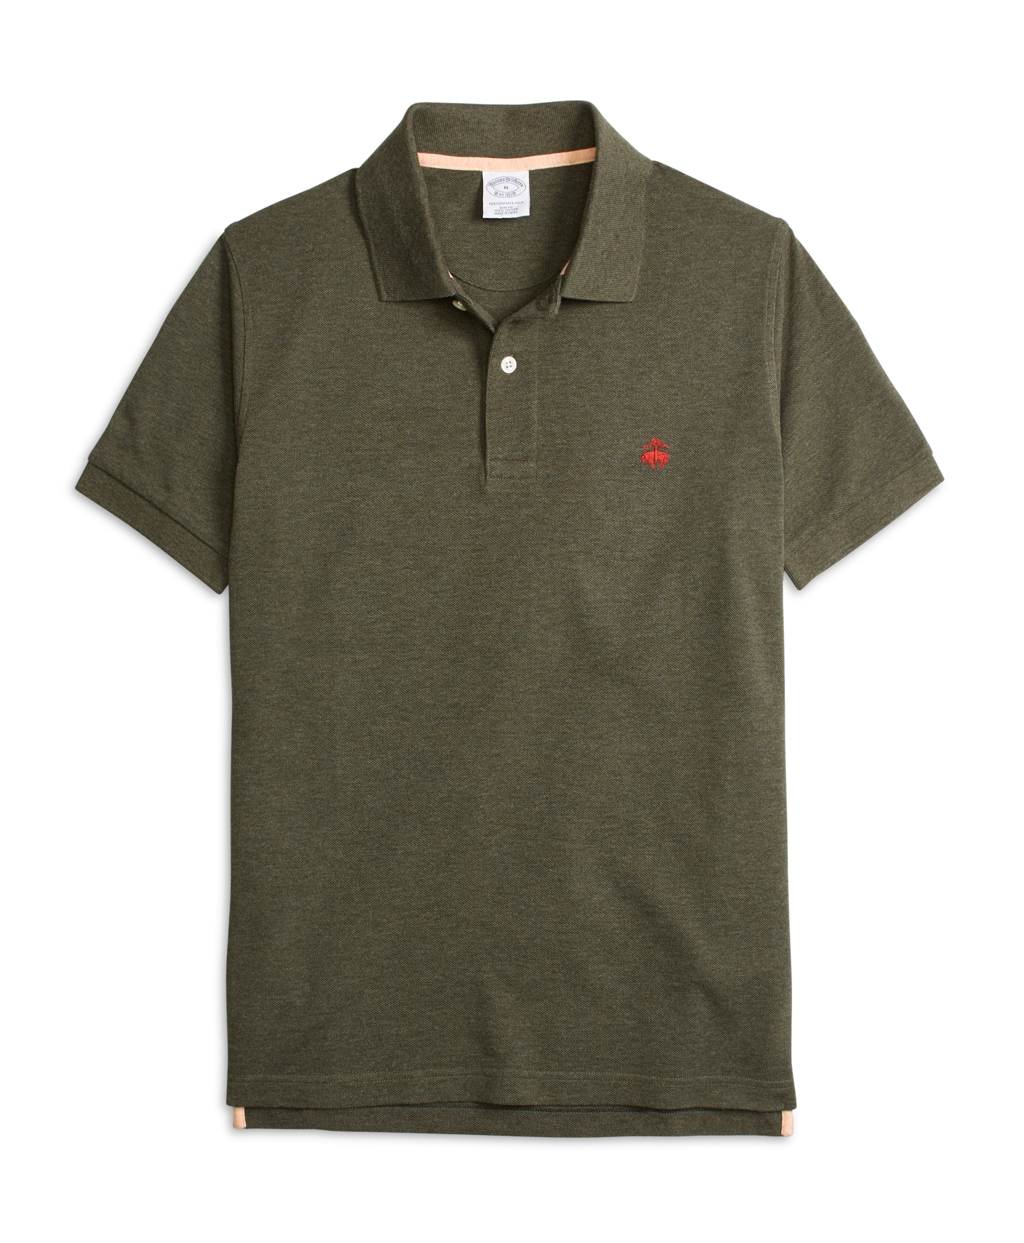 Brooks brothers slim fit heathered polo shirt in green for Brooks brothers shirt size guide